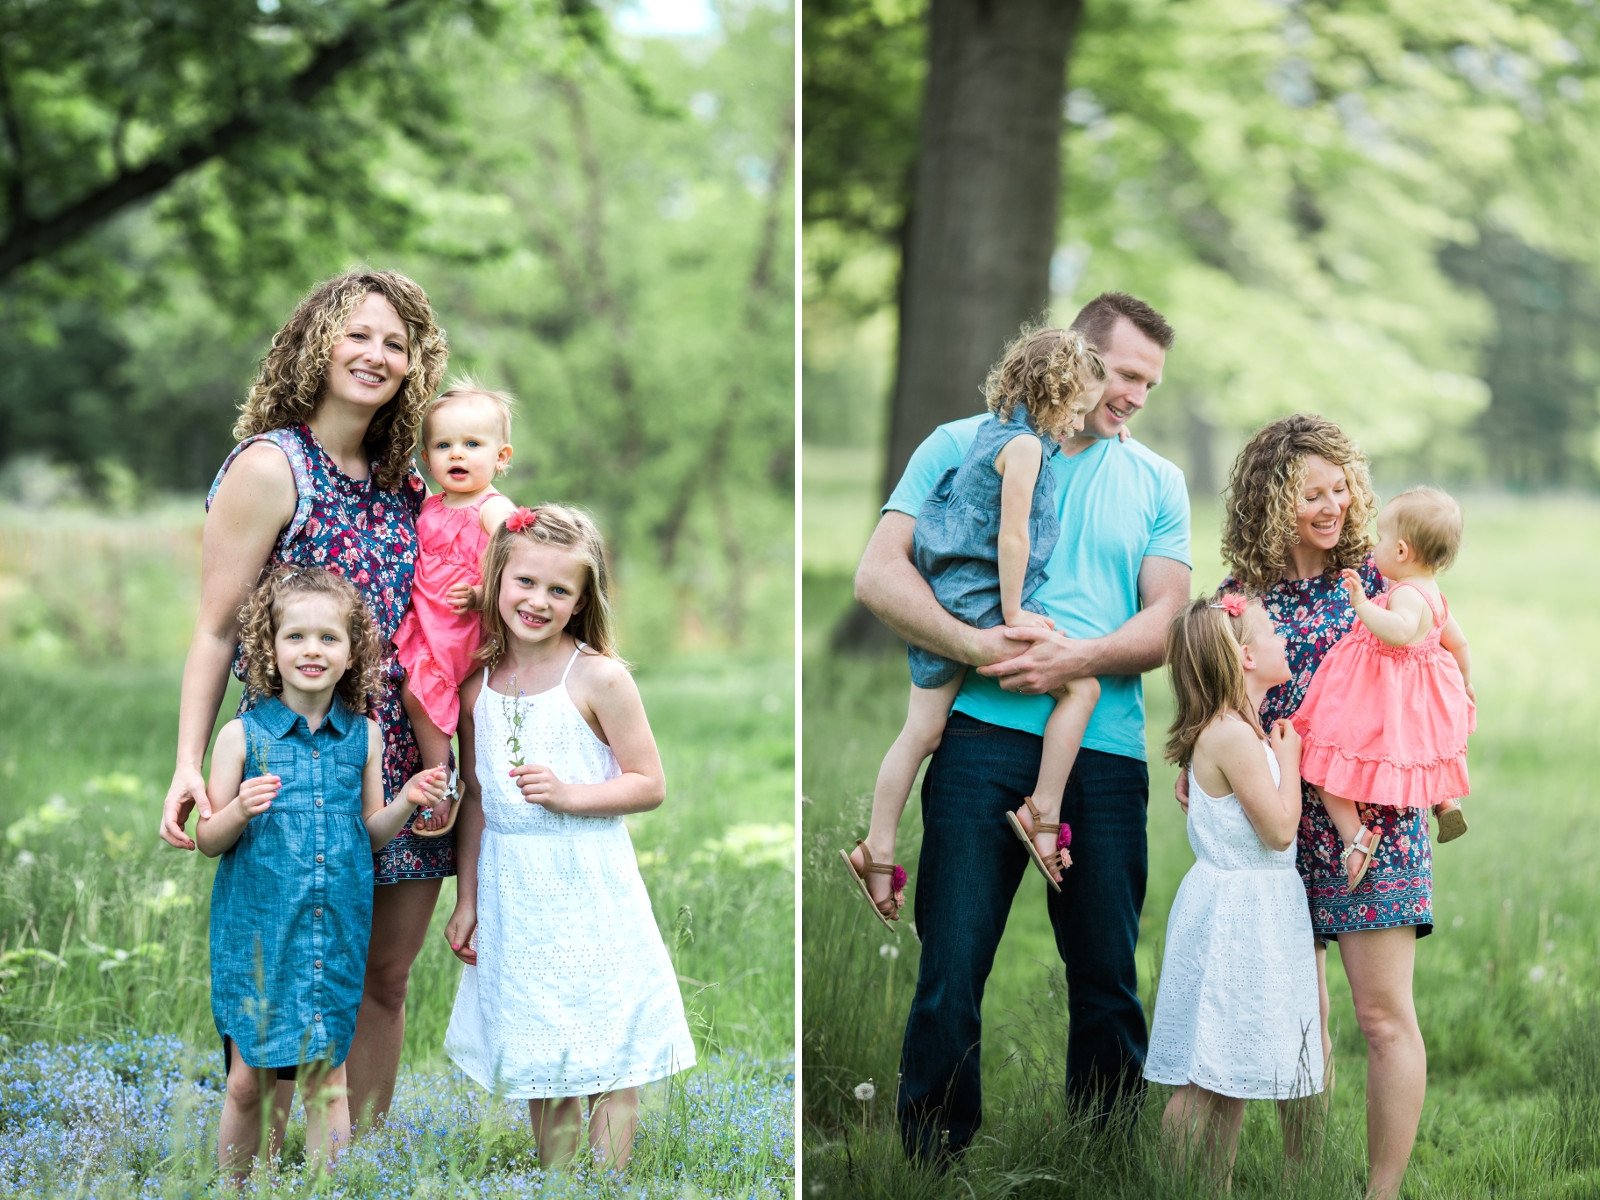 mother and her children dressed in dresses | cleveland, ohio family photographer